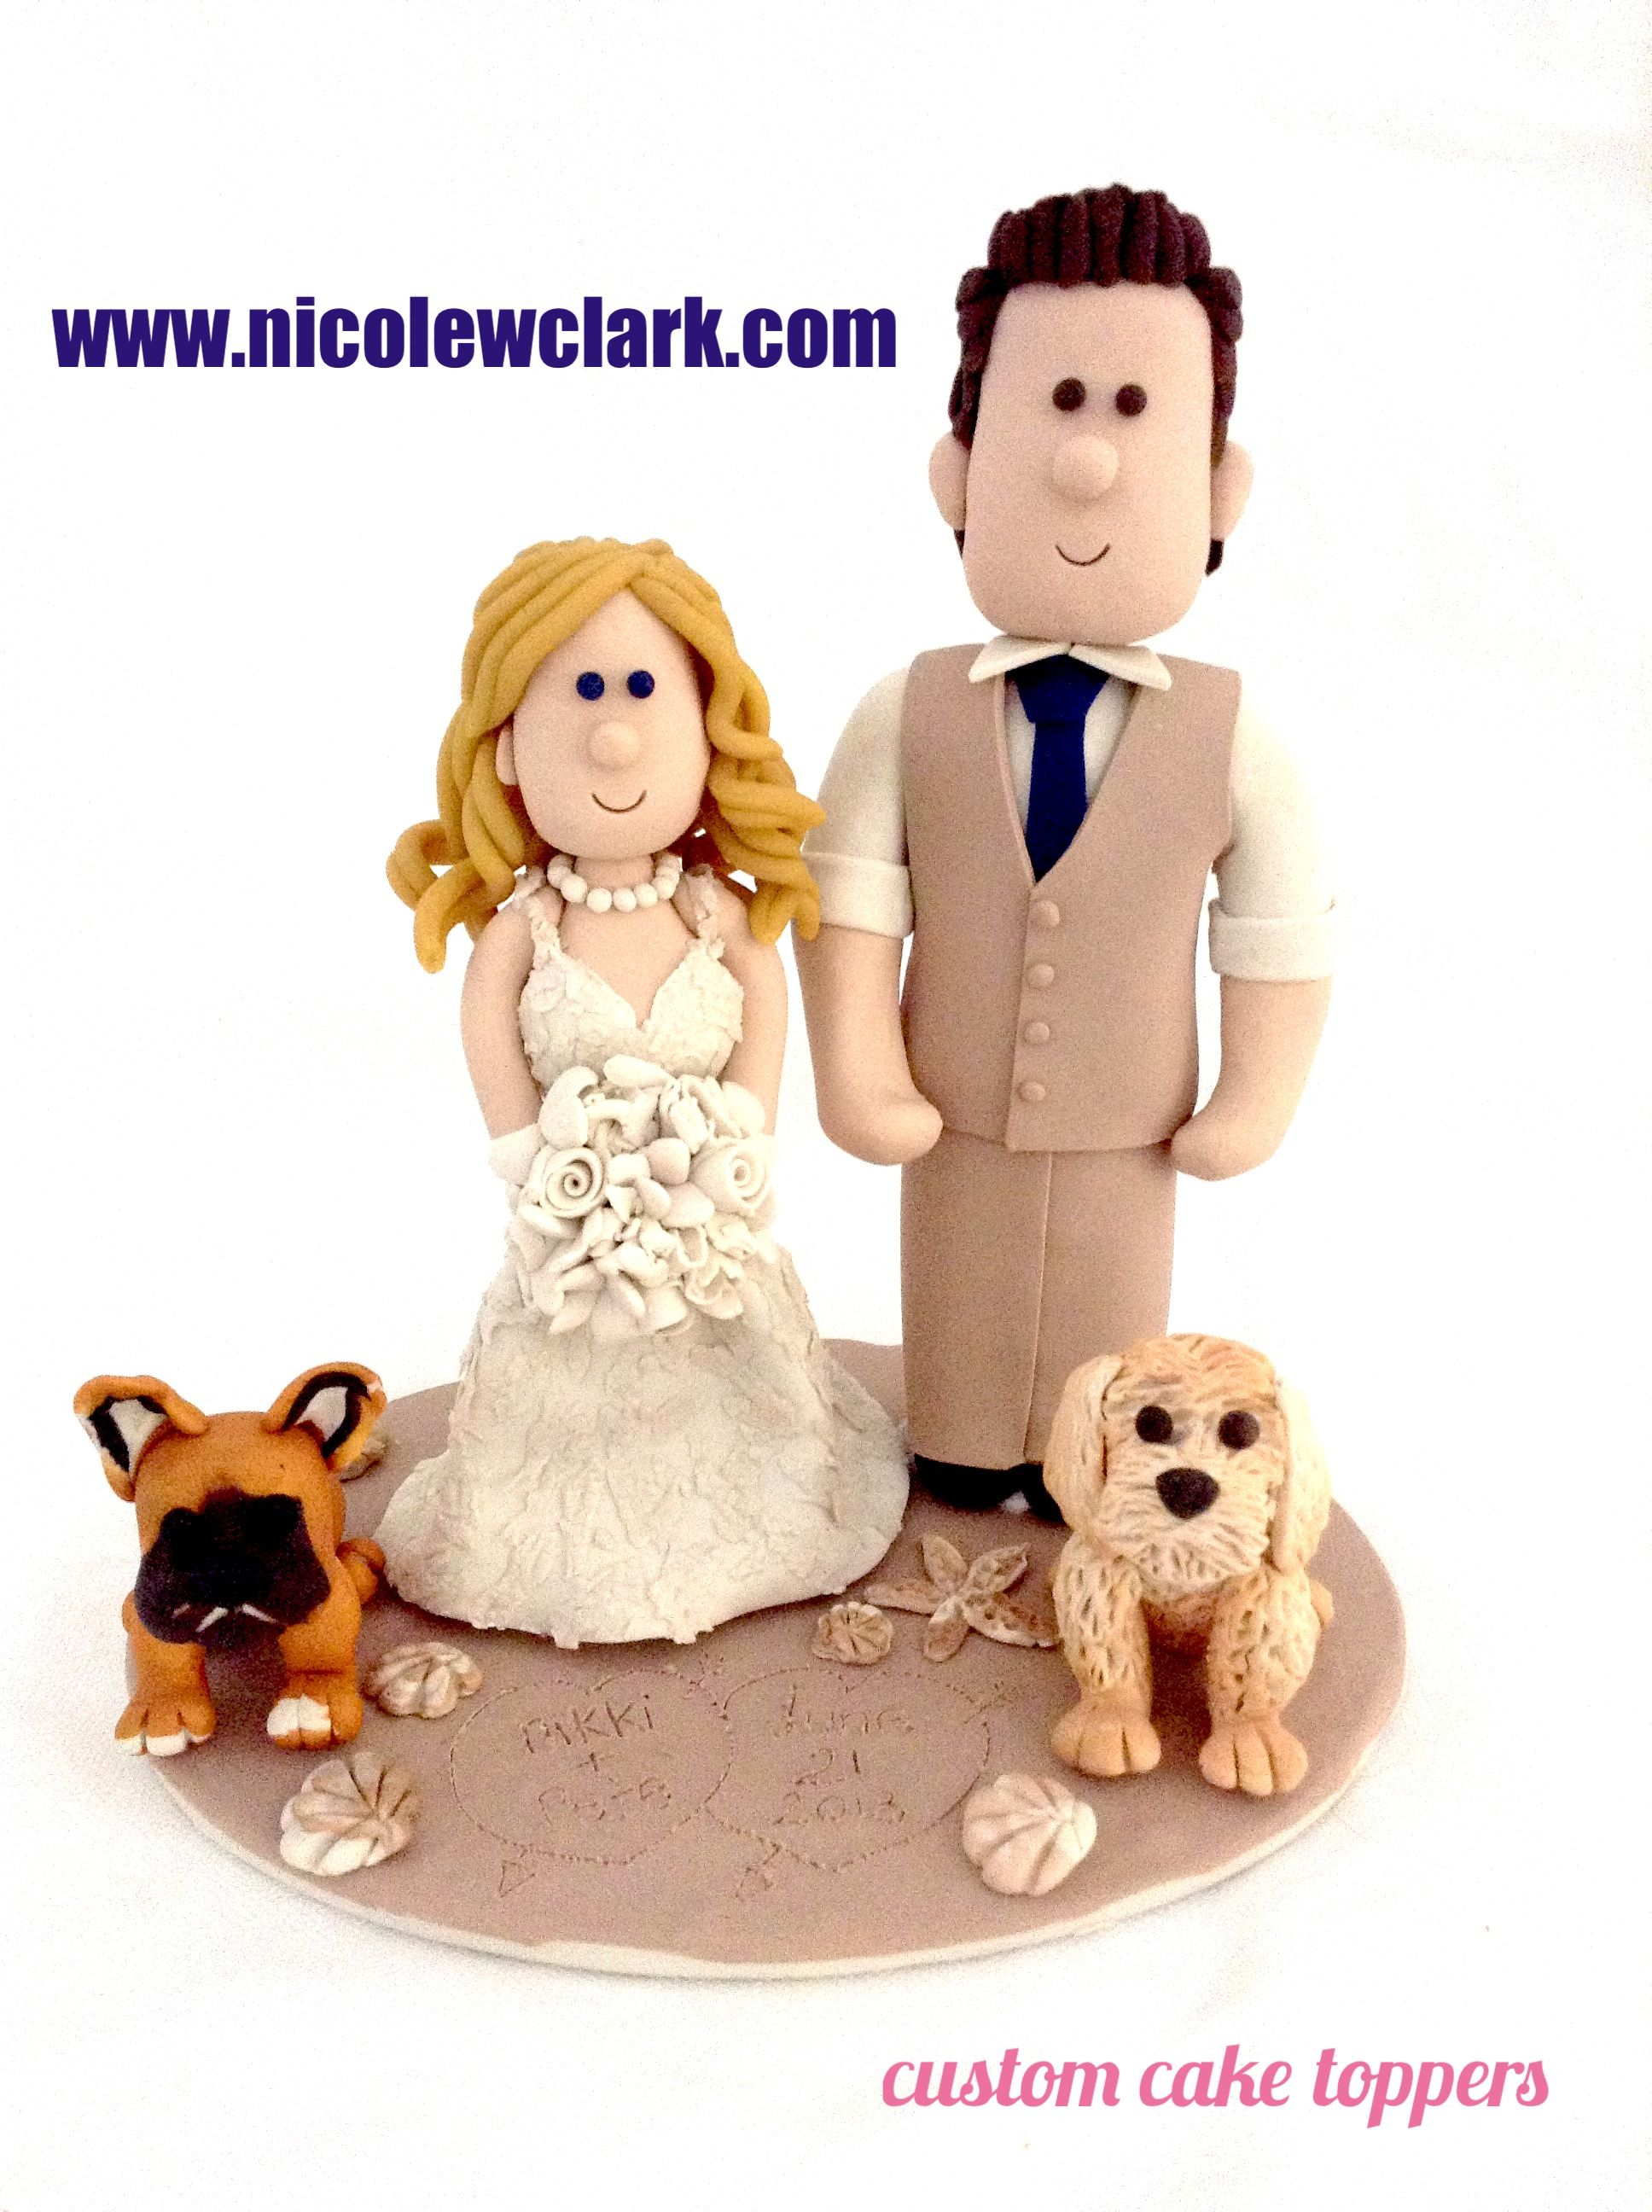 Beach wedding cake topper with dogs wedding cake topper custom